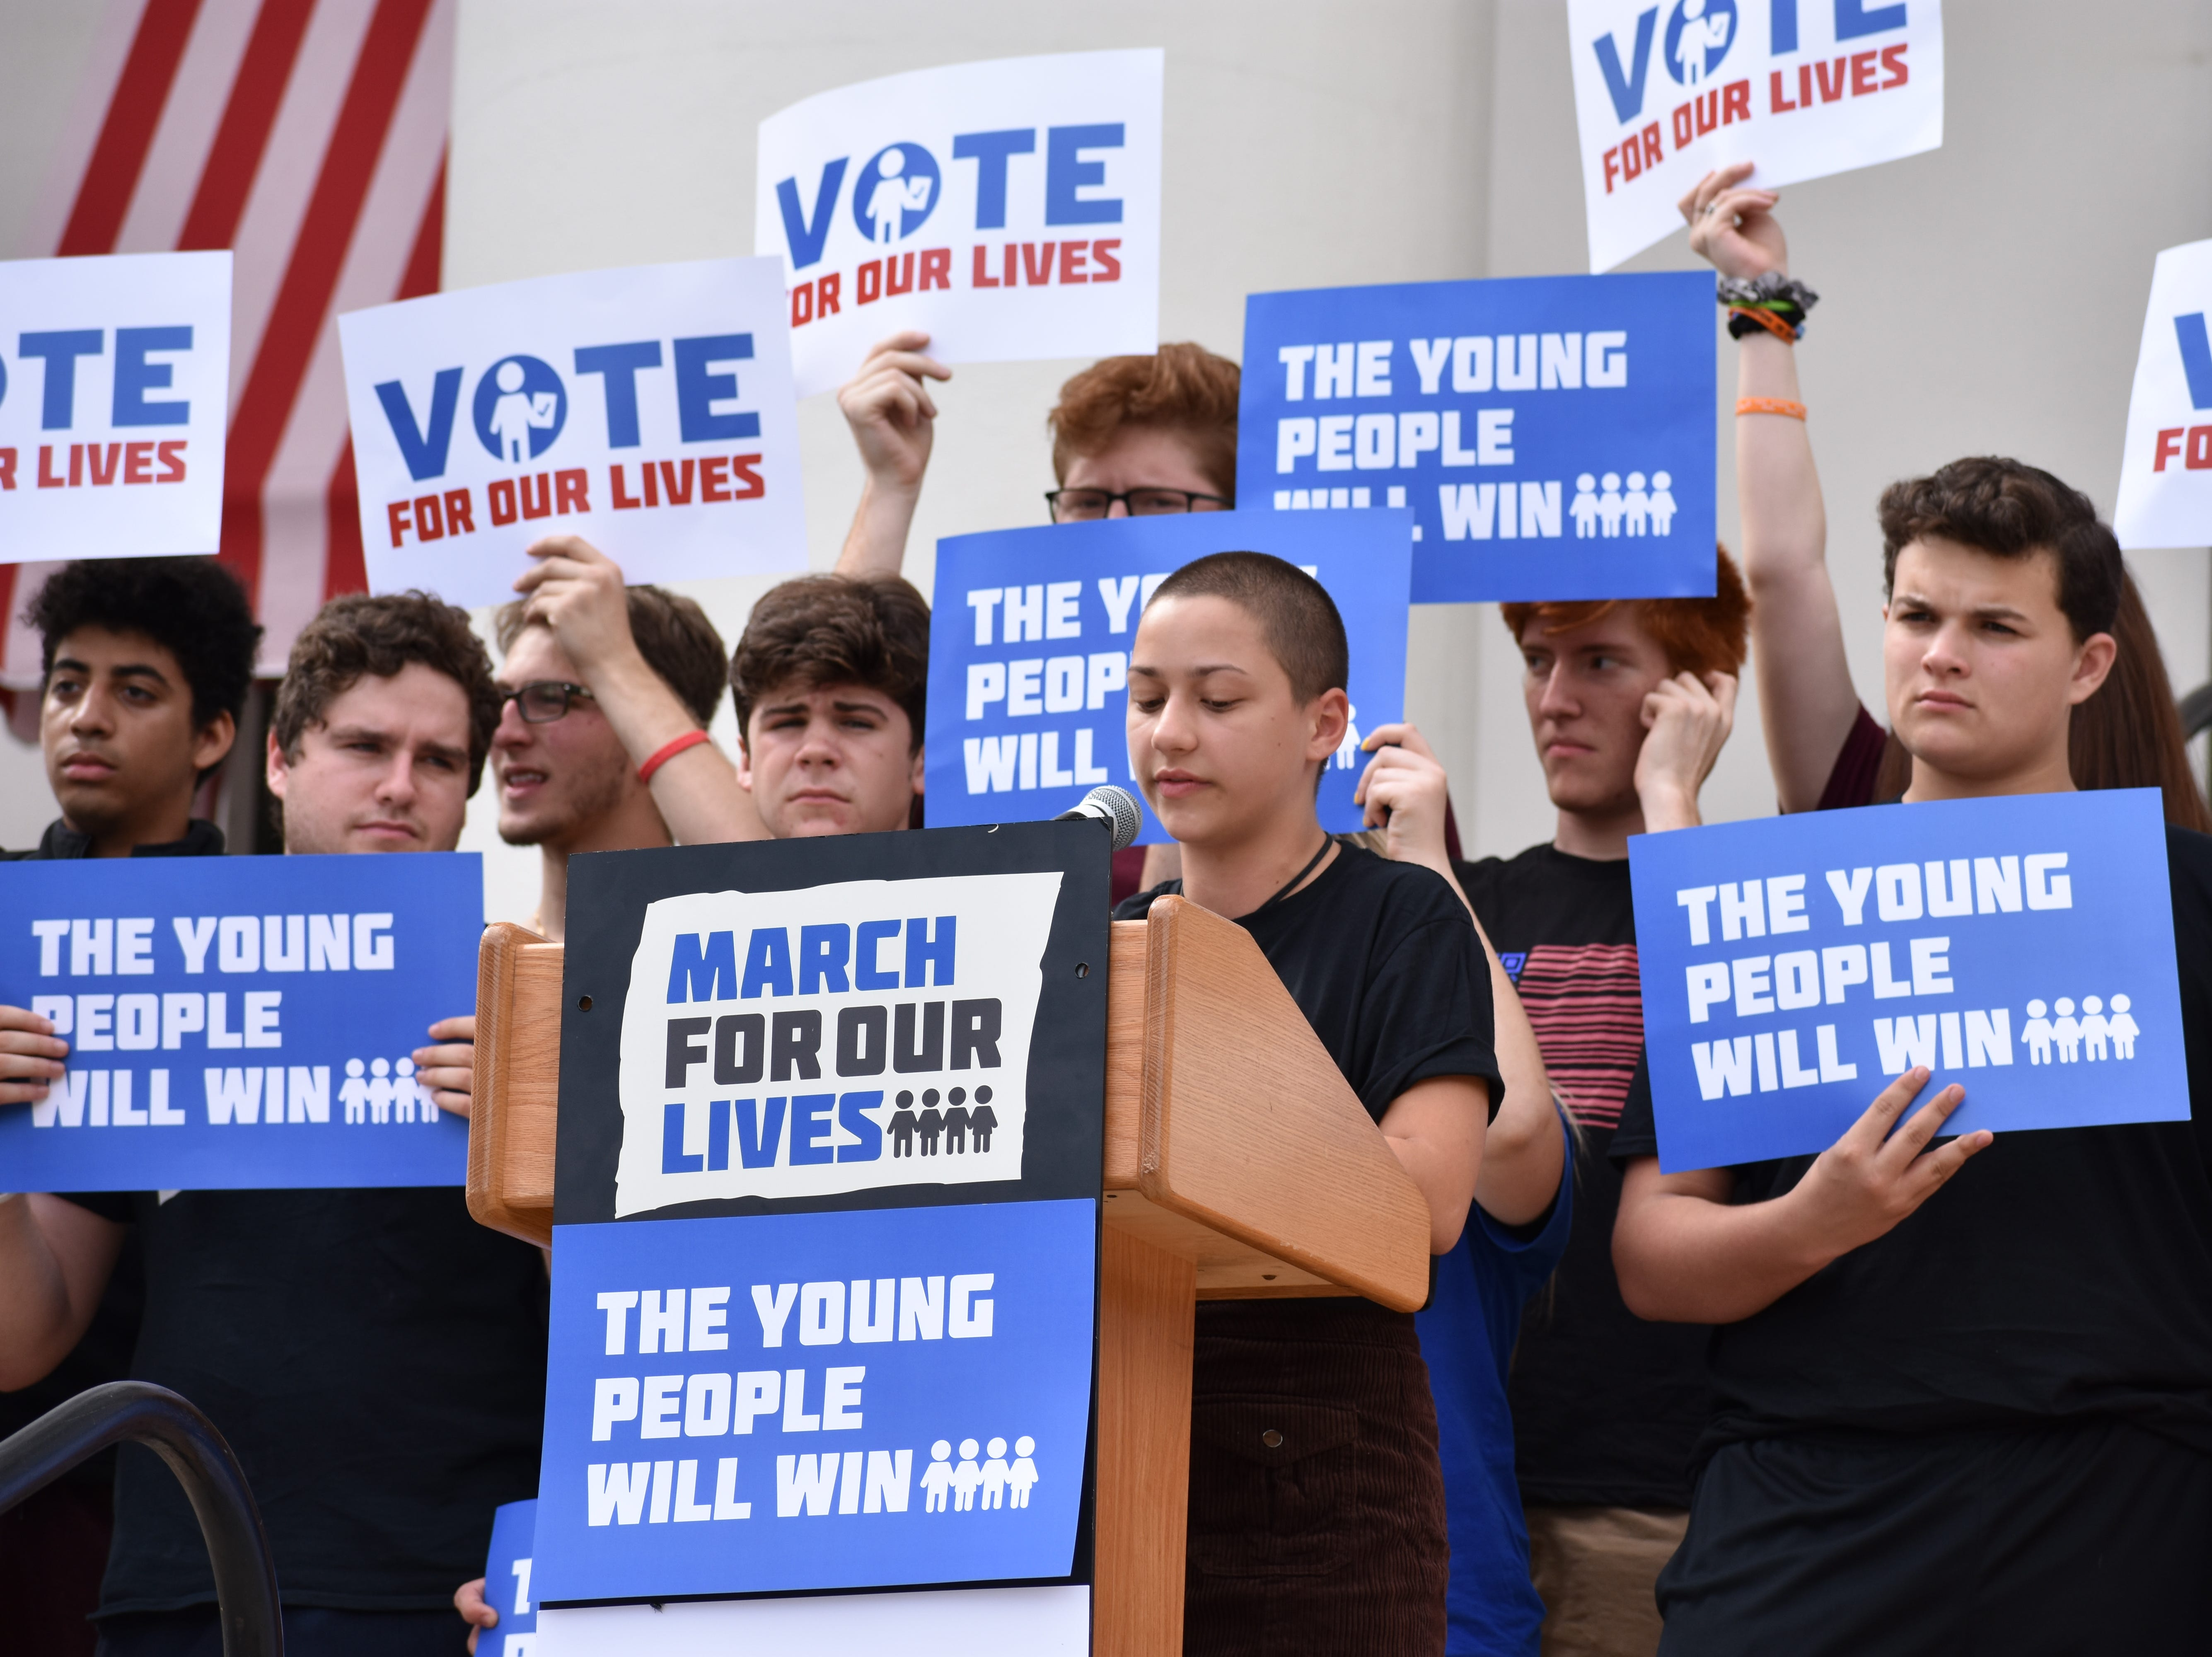 Parkland shooting survivor and March For Our Lives activist Emma González  delivered a speech from the Capitol building's steps to urge young people to vote and elect leaders willing to enact gun control reforms.